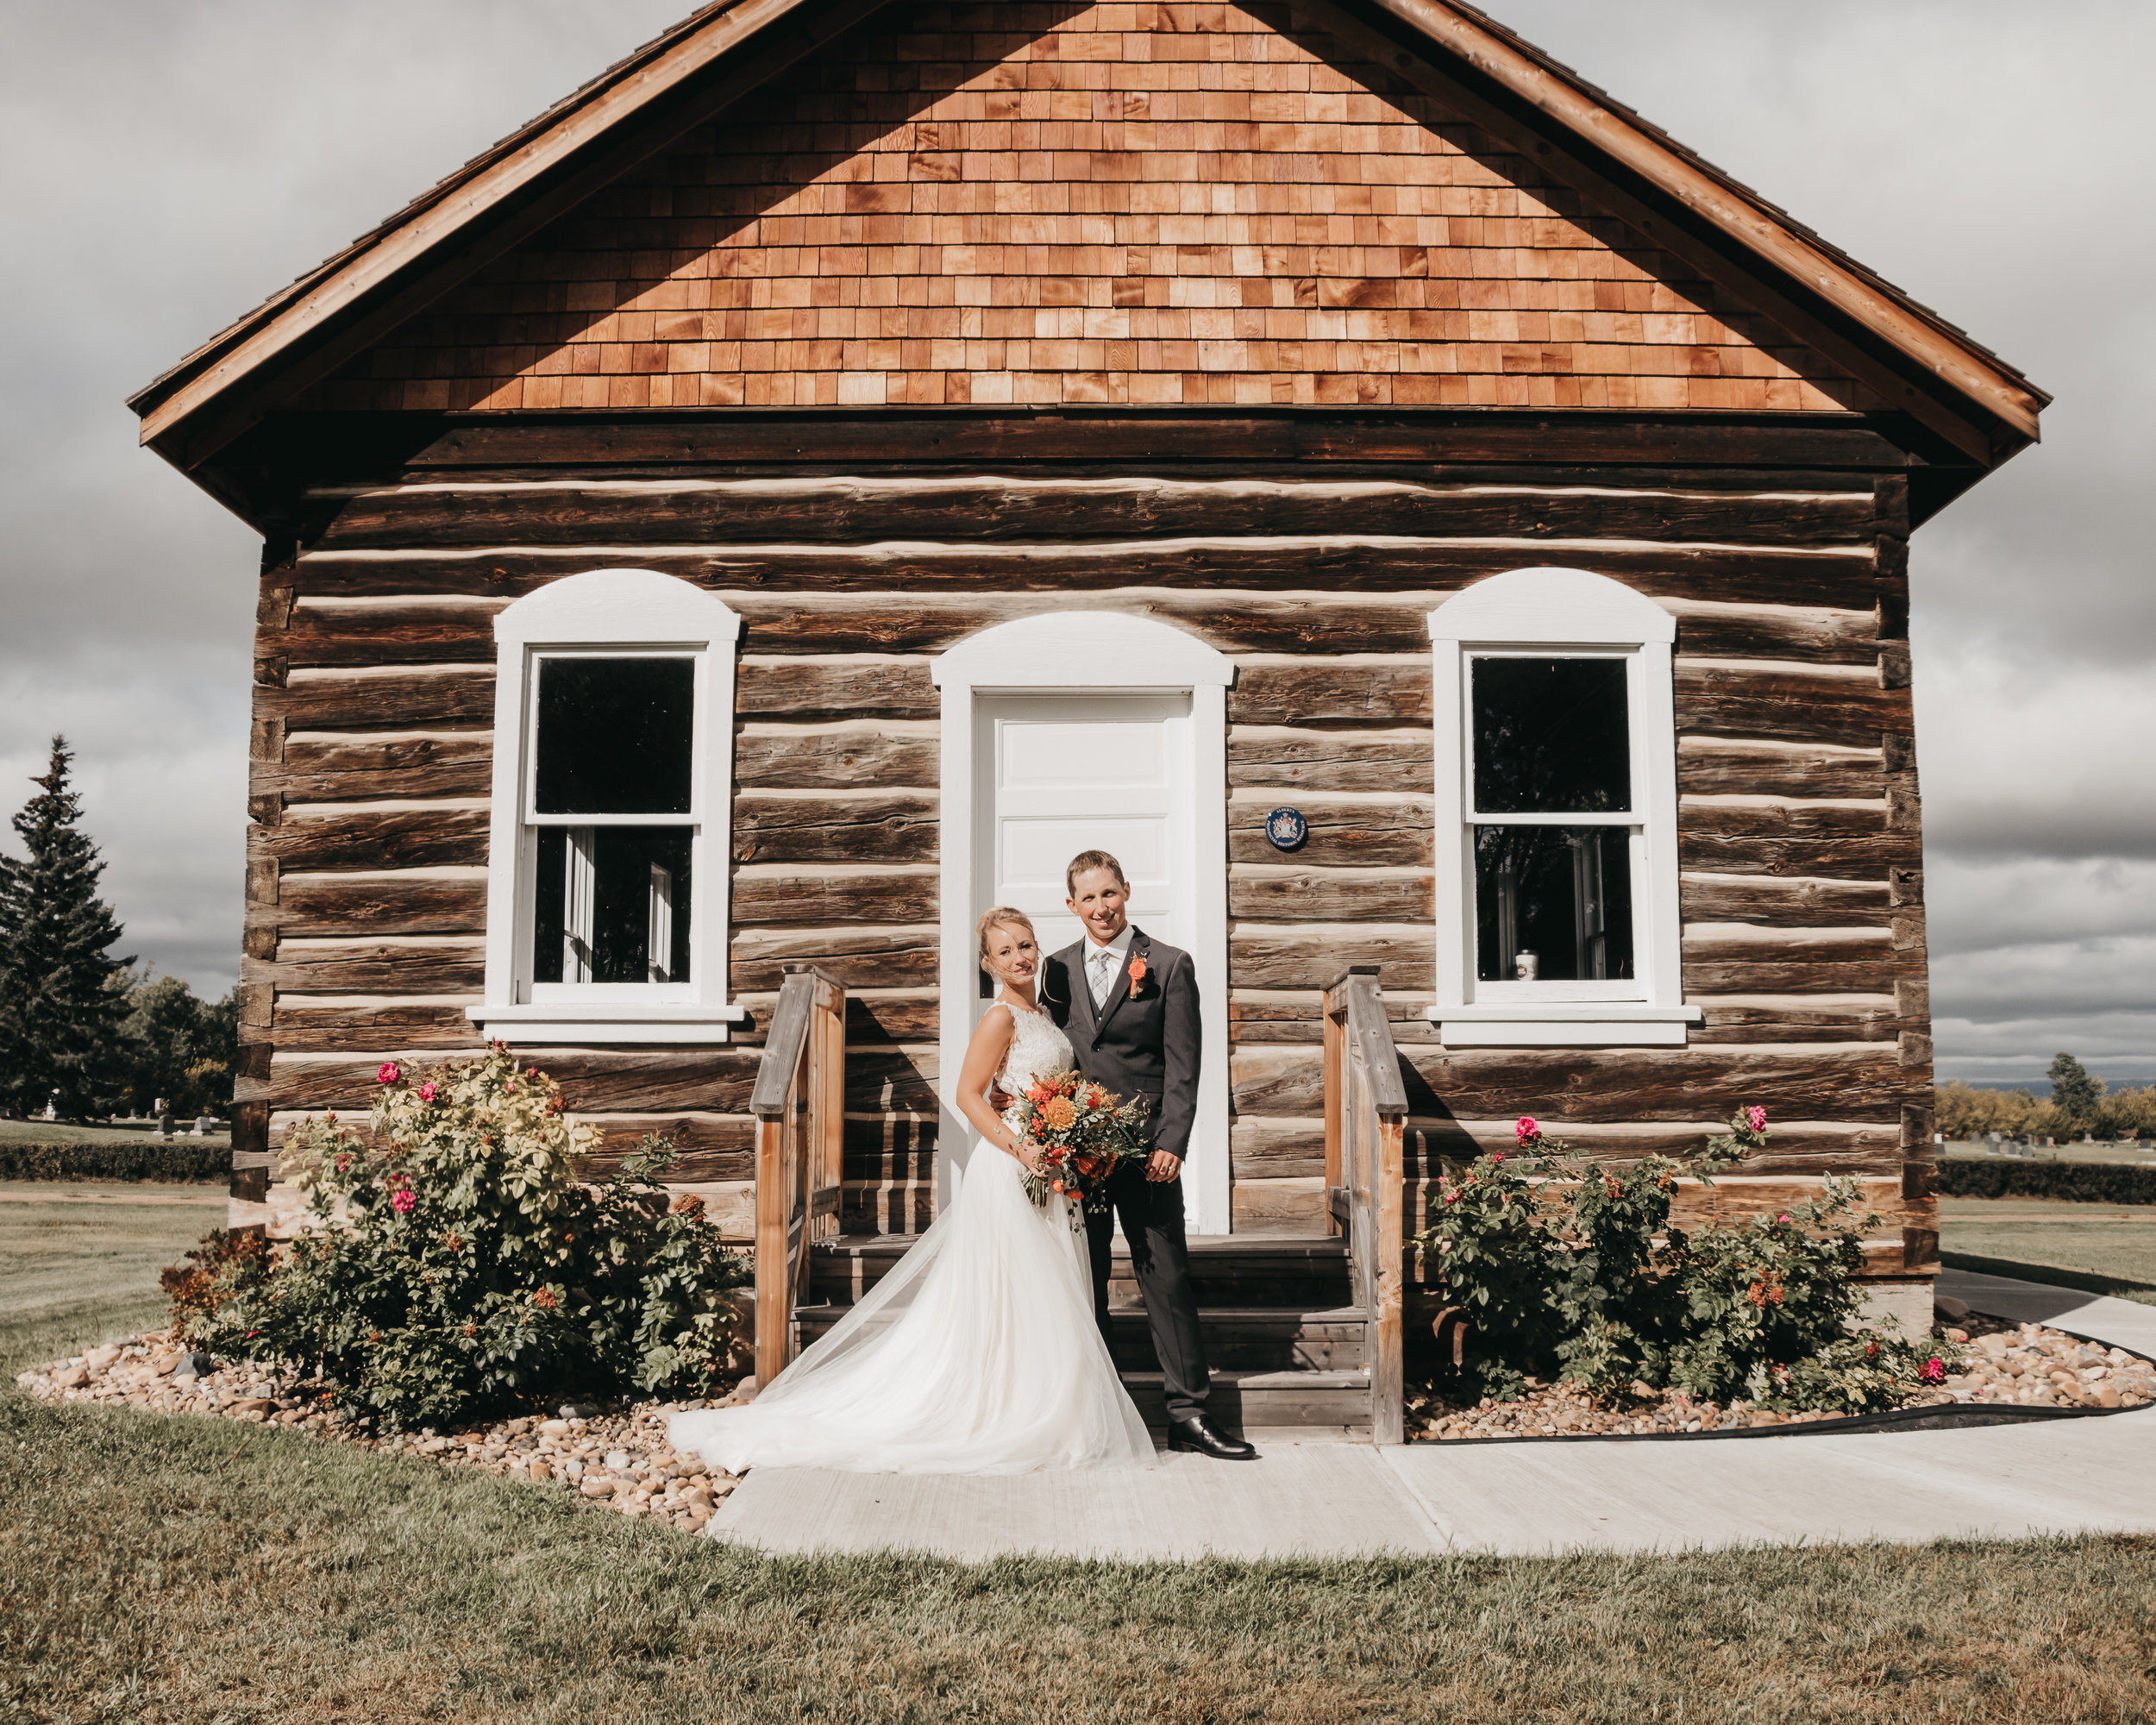 Andrew & Victoria | Grande Prairie, Alberta Wedding | Edmonton Wedding Photographer